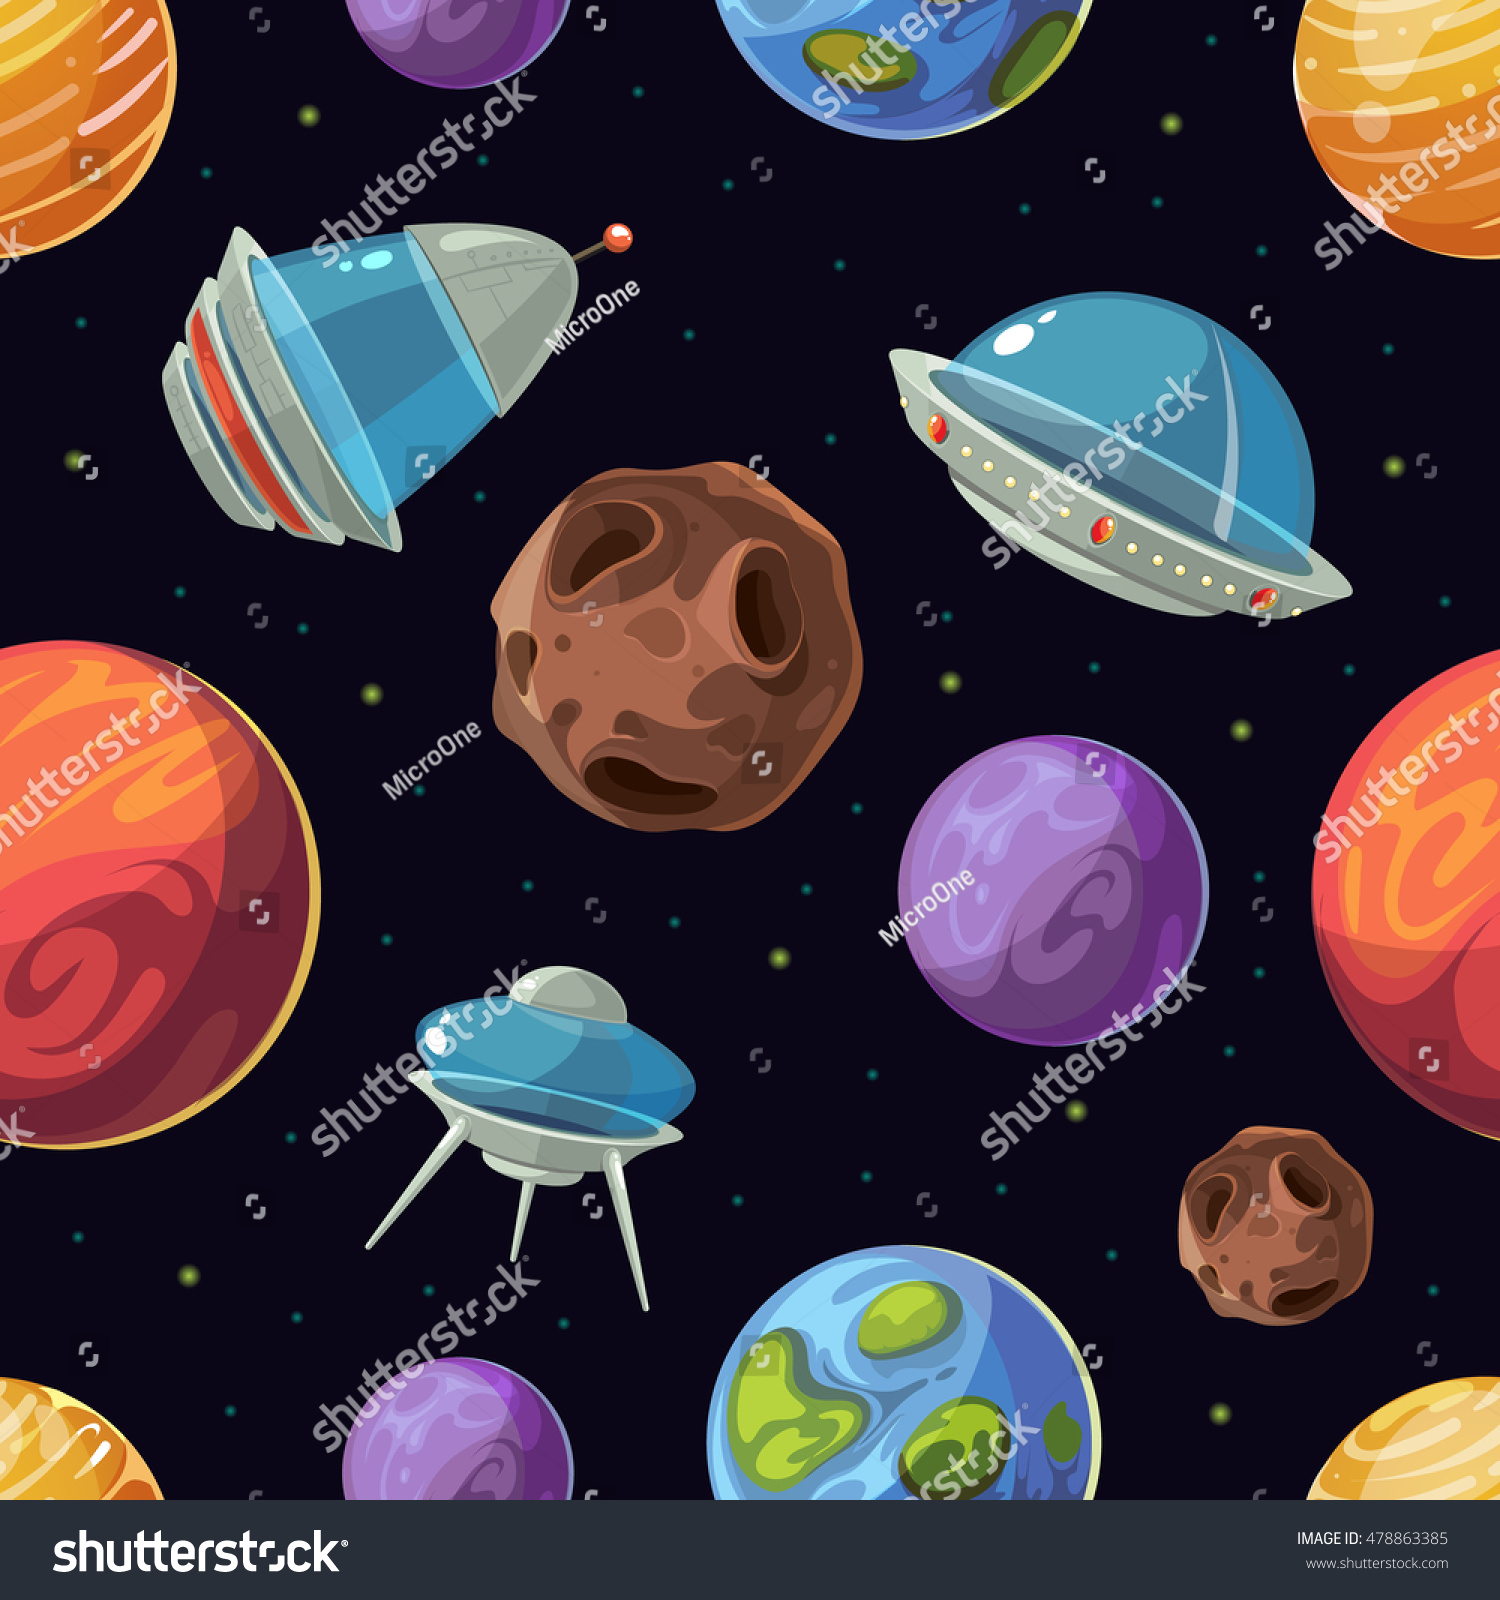 galaxies planets and stars cartoons - photo #27